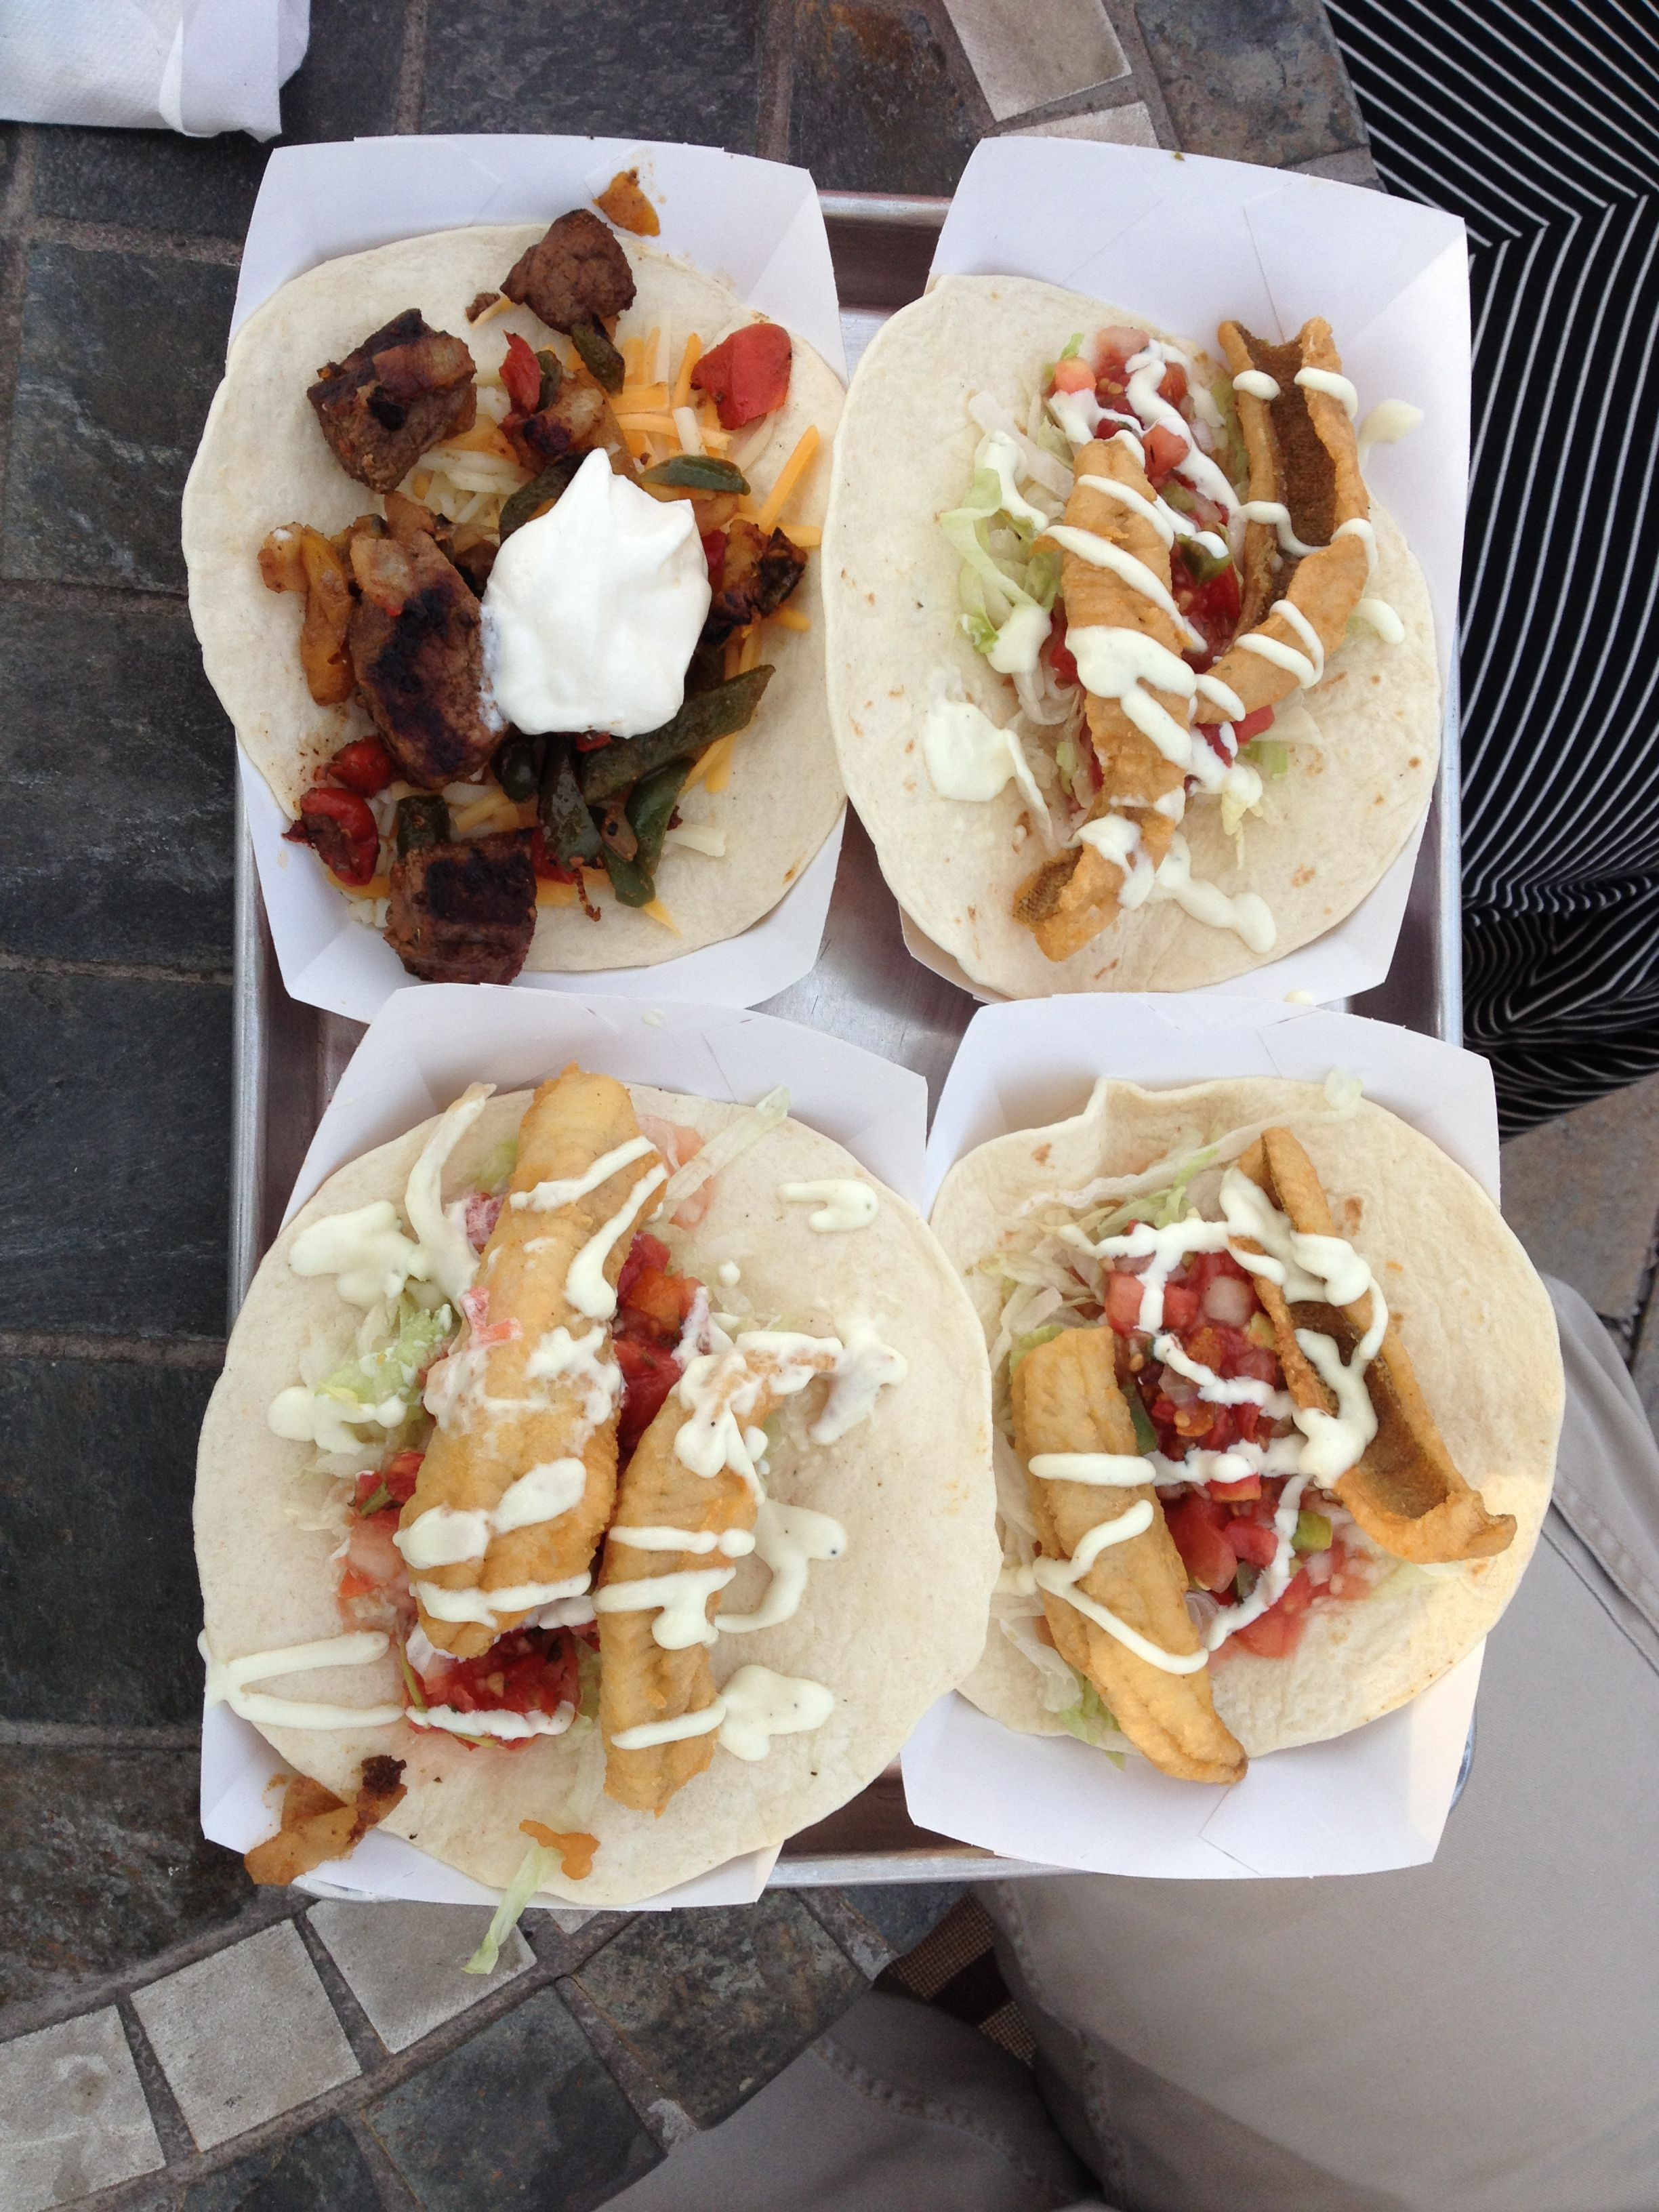 DOCKSIDE CAFE STEAK AND PERCH TACOS